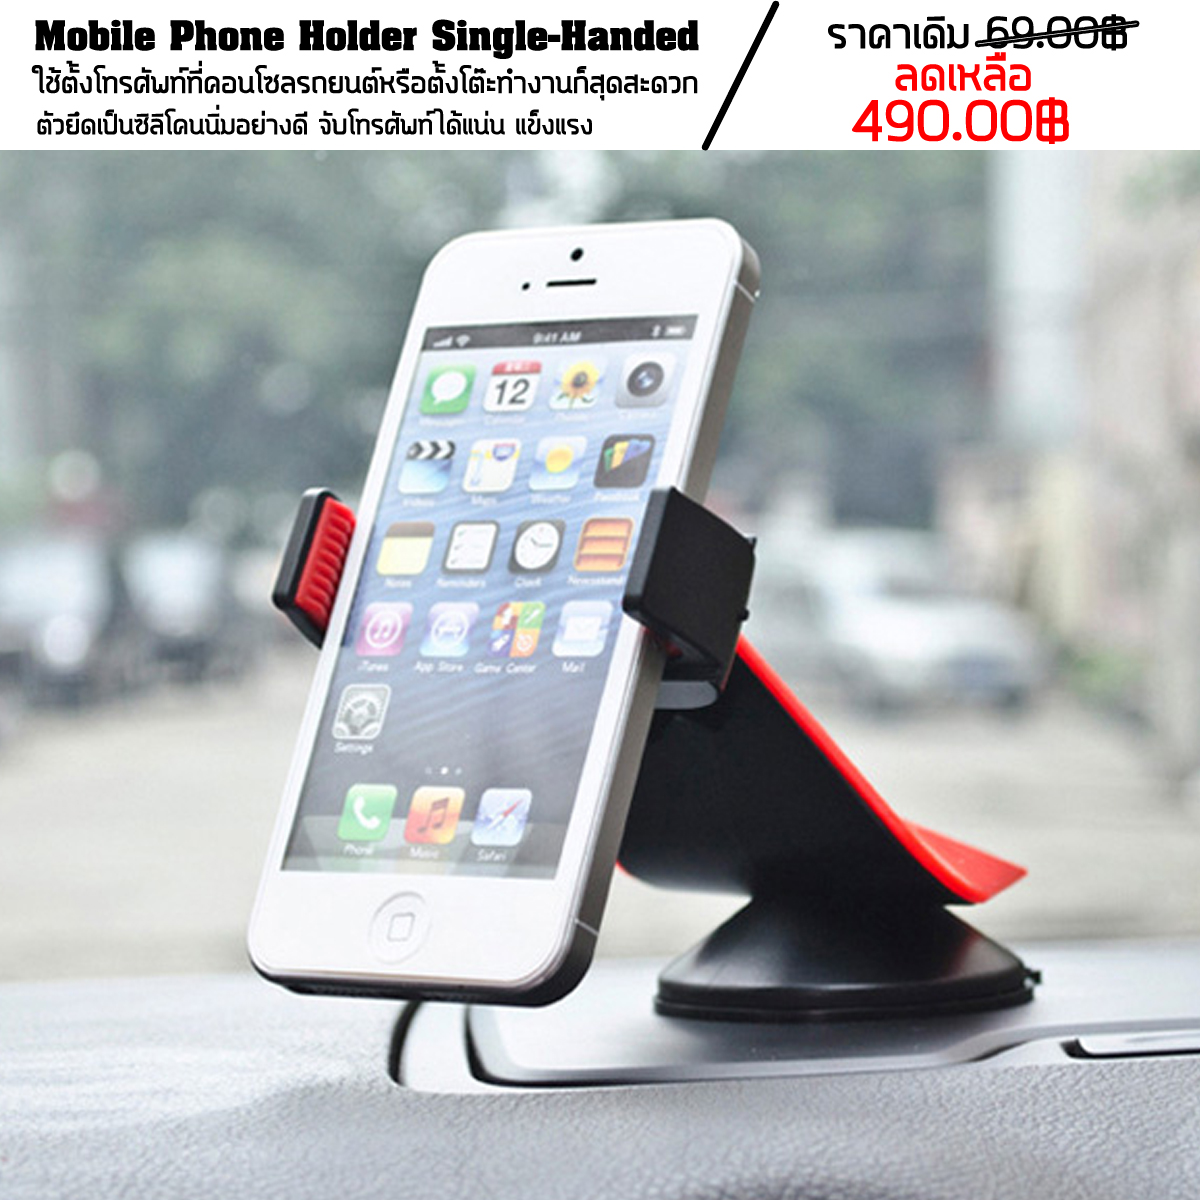 mobile-phone-holder-single-handed-operation